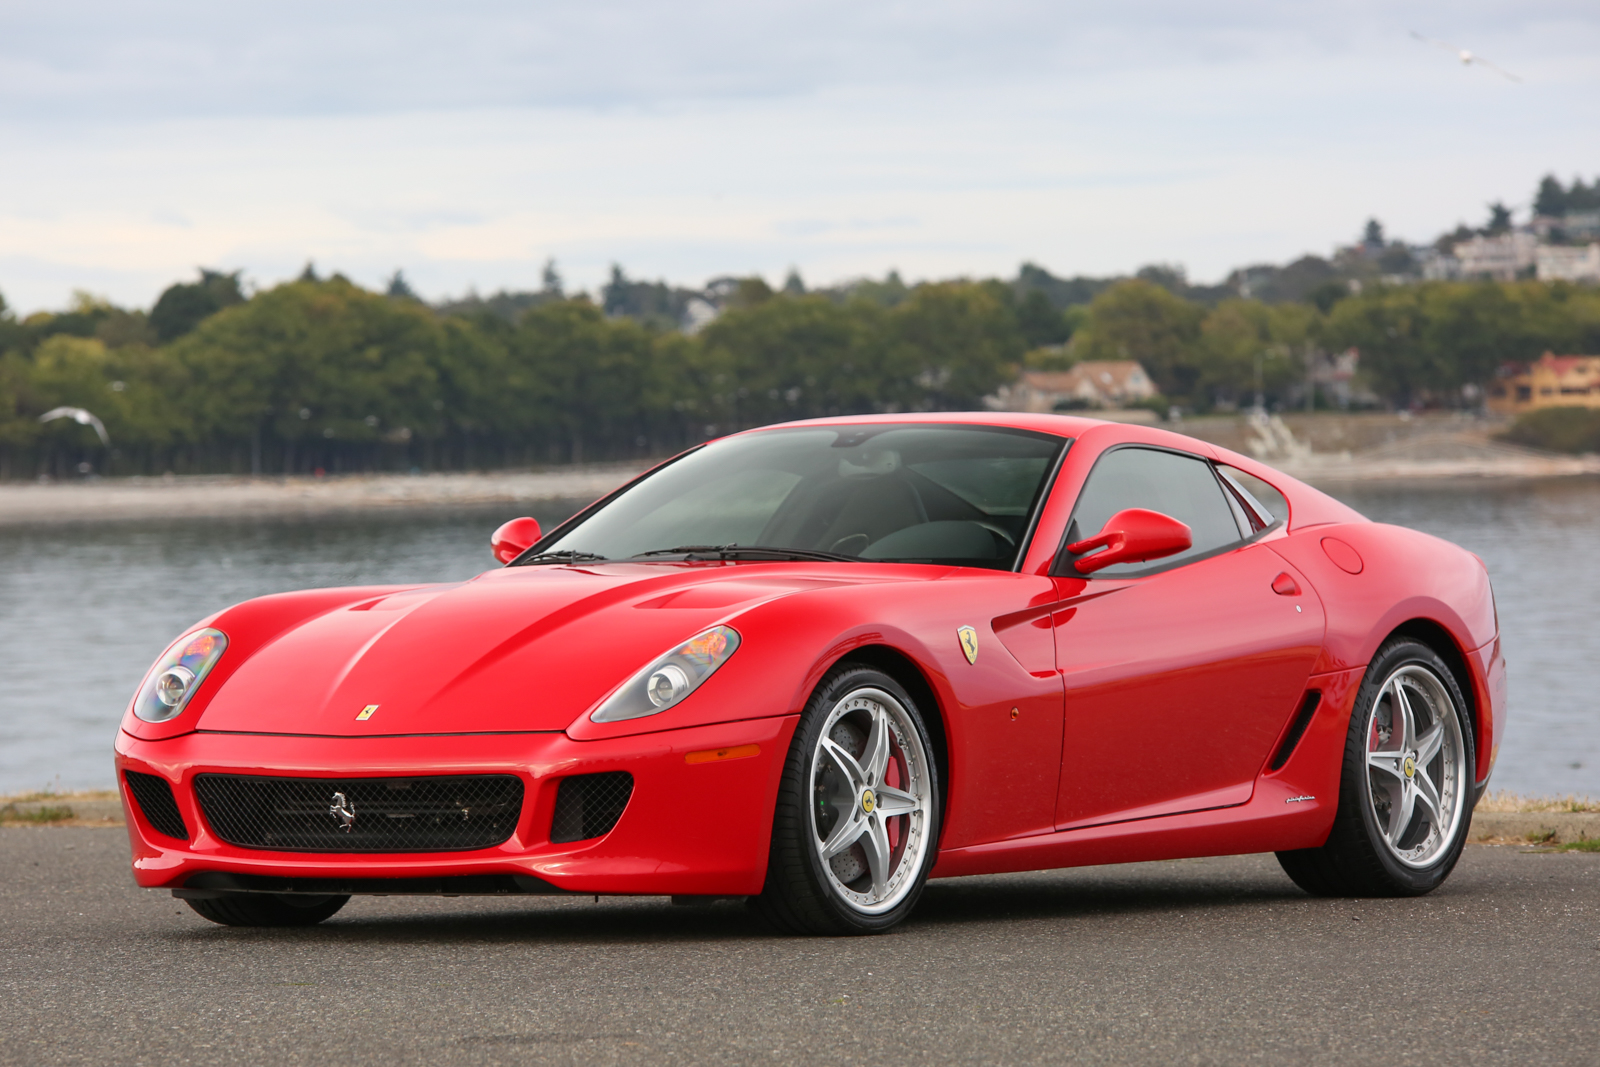 2007 ferrari 599 gtb fiorano hgte 6 speed silver arrow cars ltd. Black Bedroom Furniture Sets. Home Design Ideas